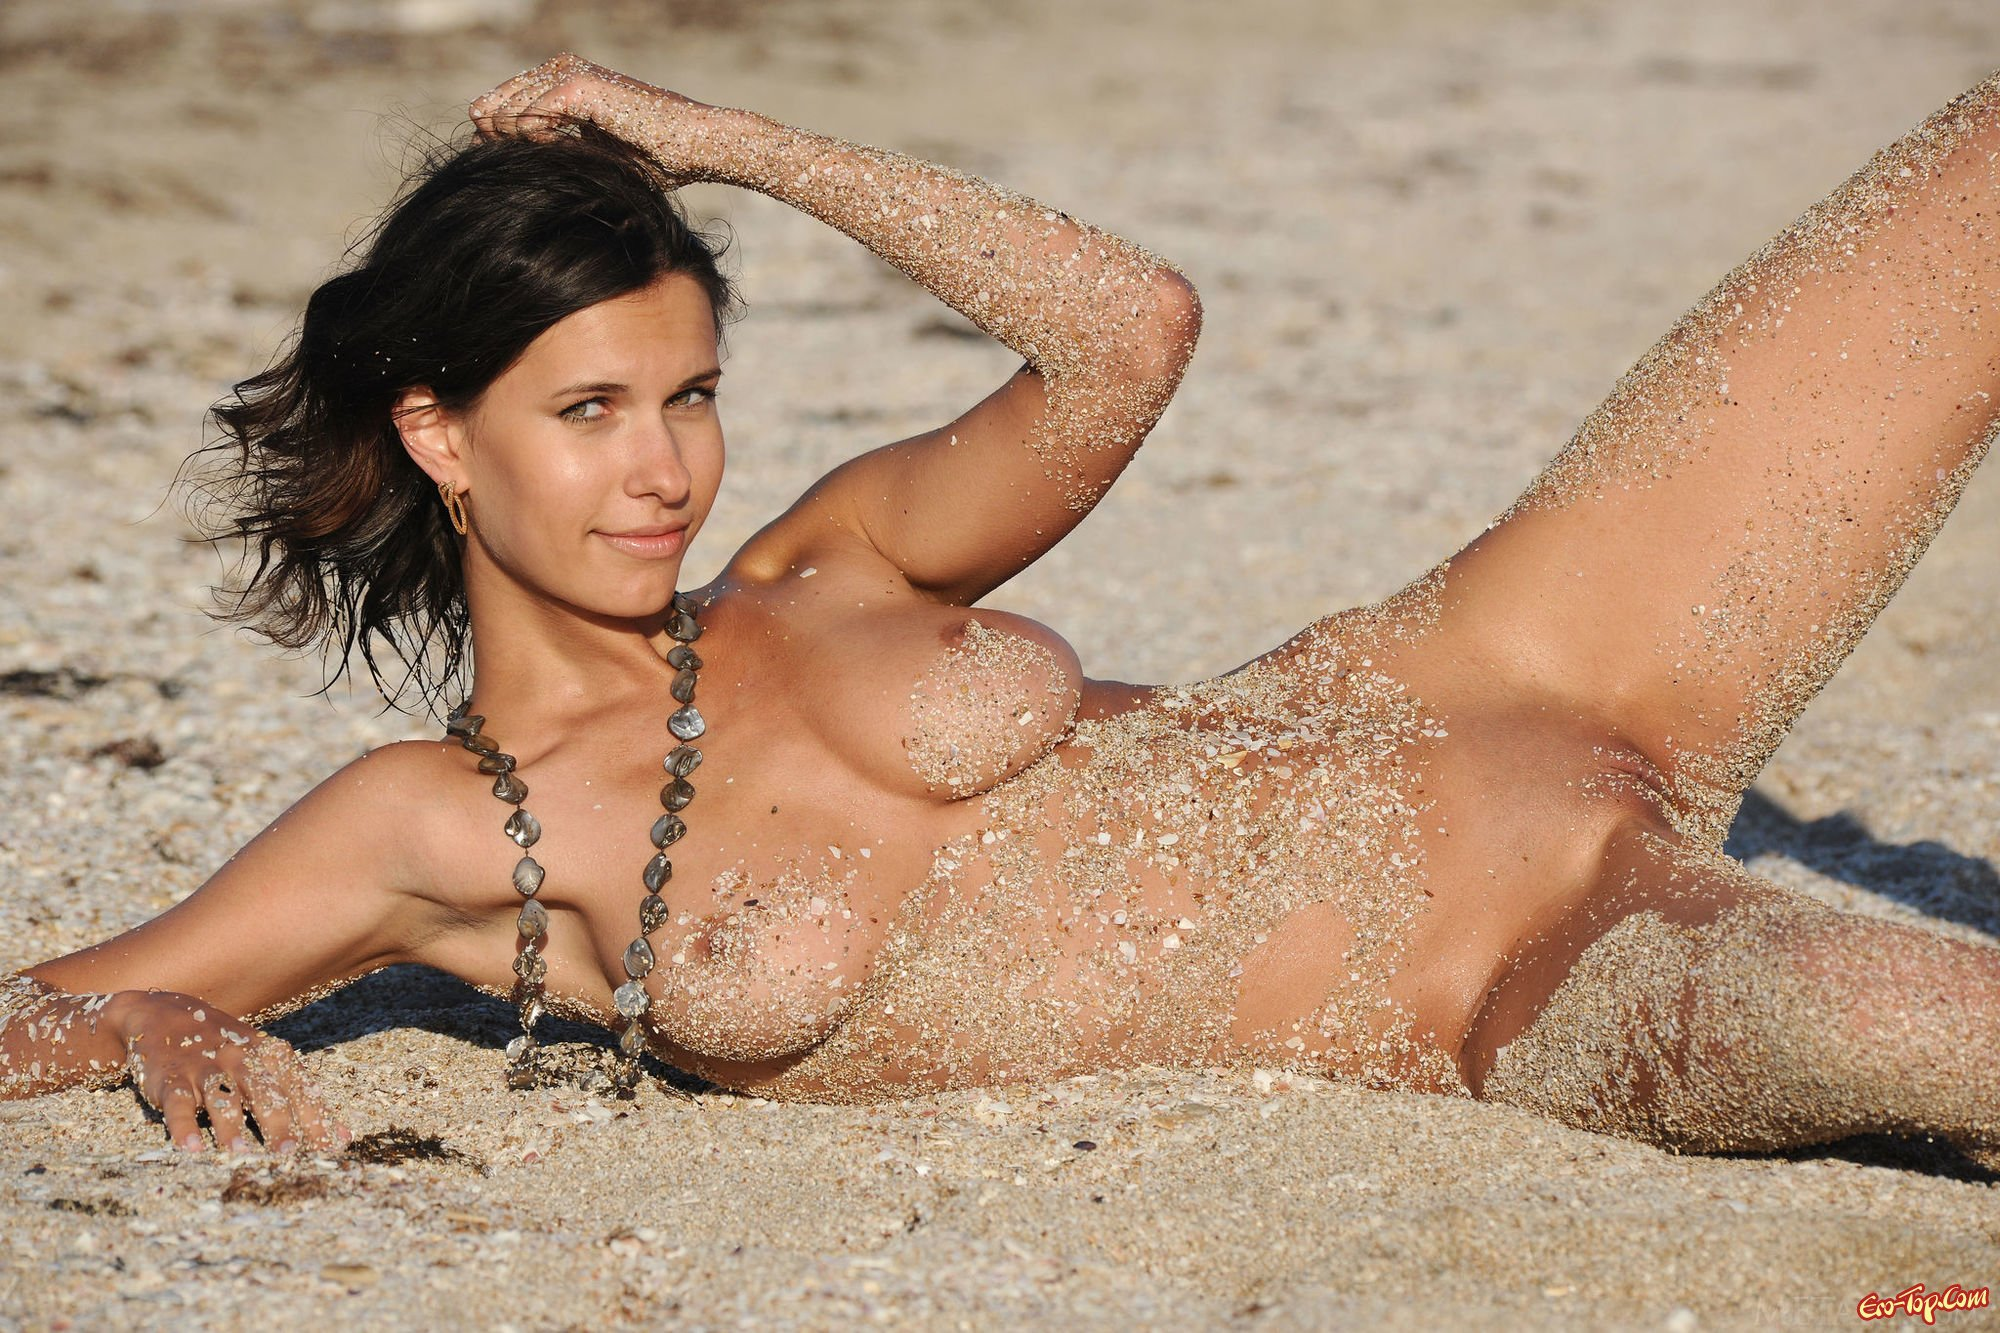 about-wife-nude-girls-playing-in-sand